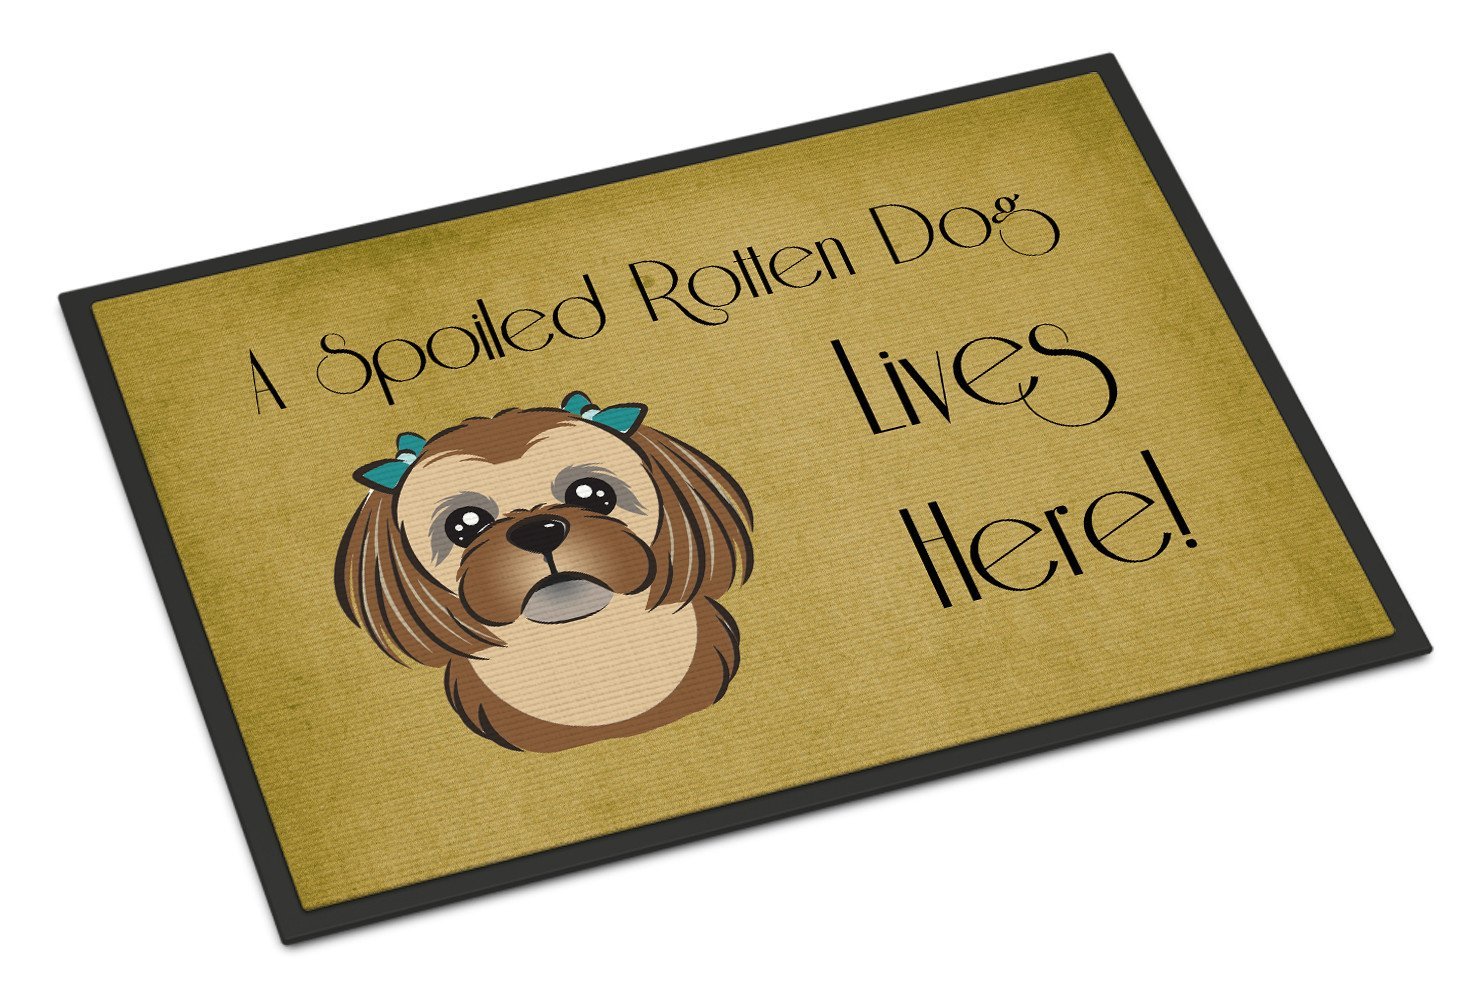 Chocolate Brown Shih Tzu Spoiled Dog Lives Here Indoor or Outdoor Mat 18x27 BB1497MAT - the-store.com